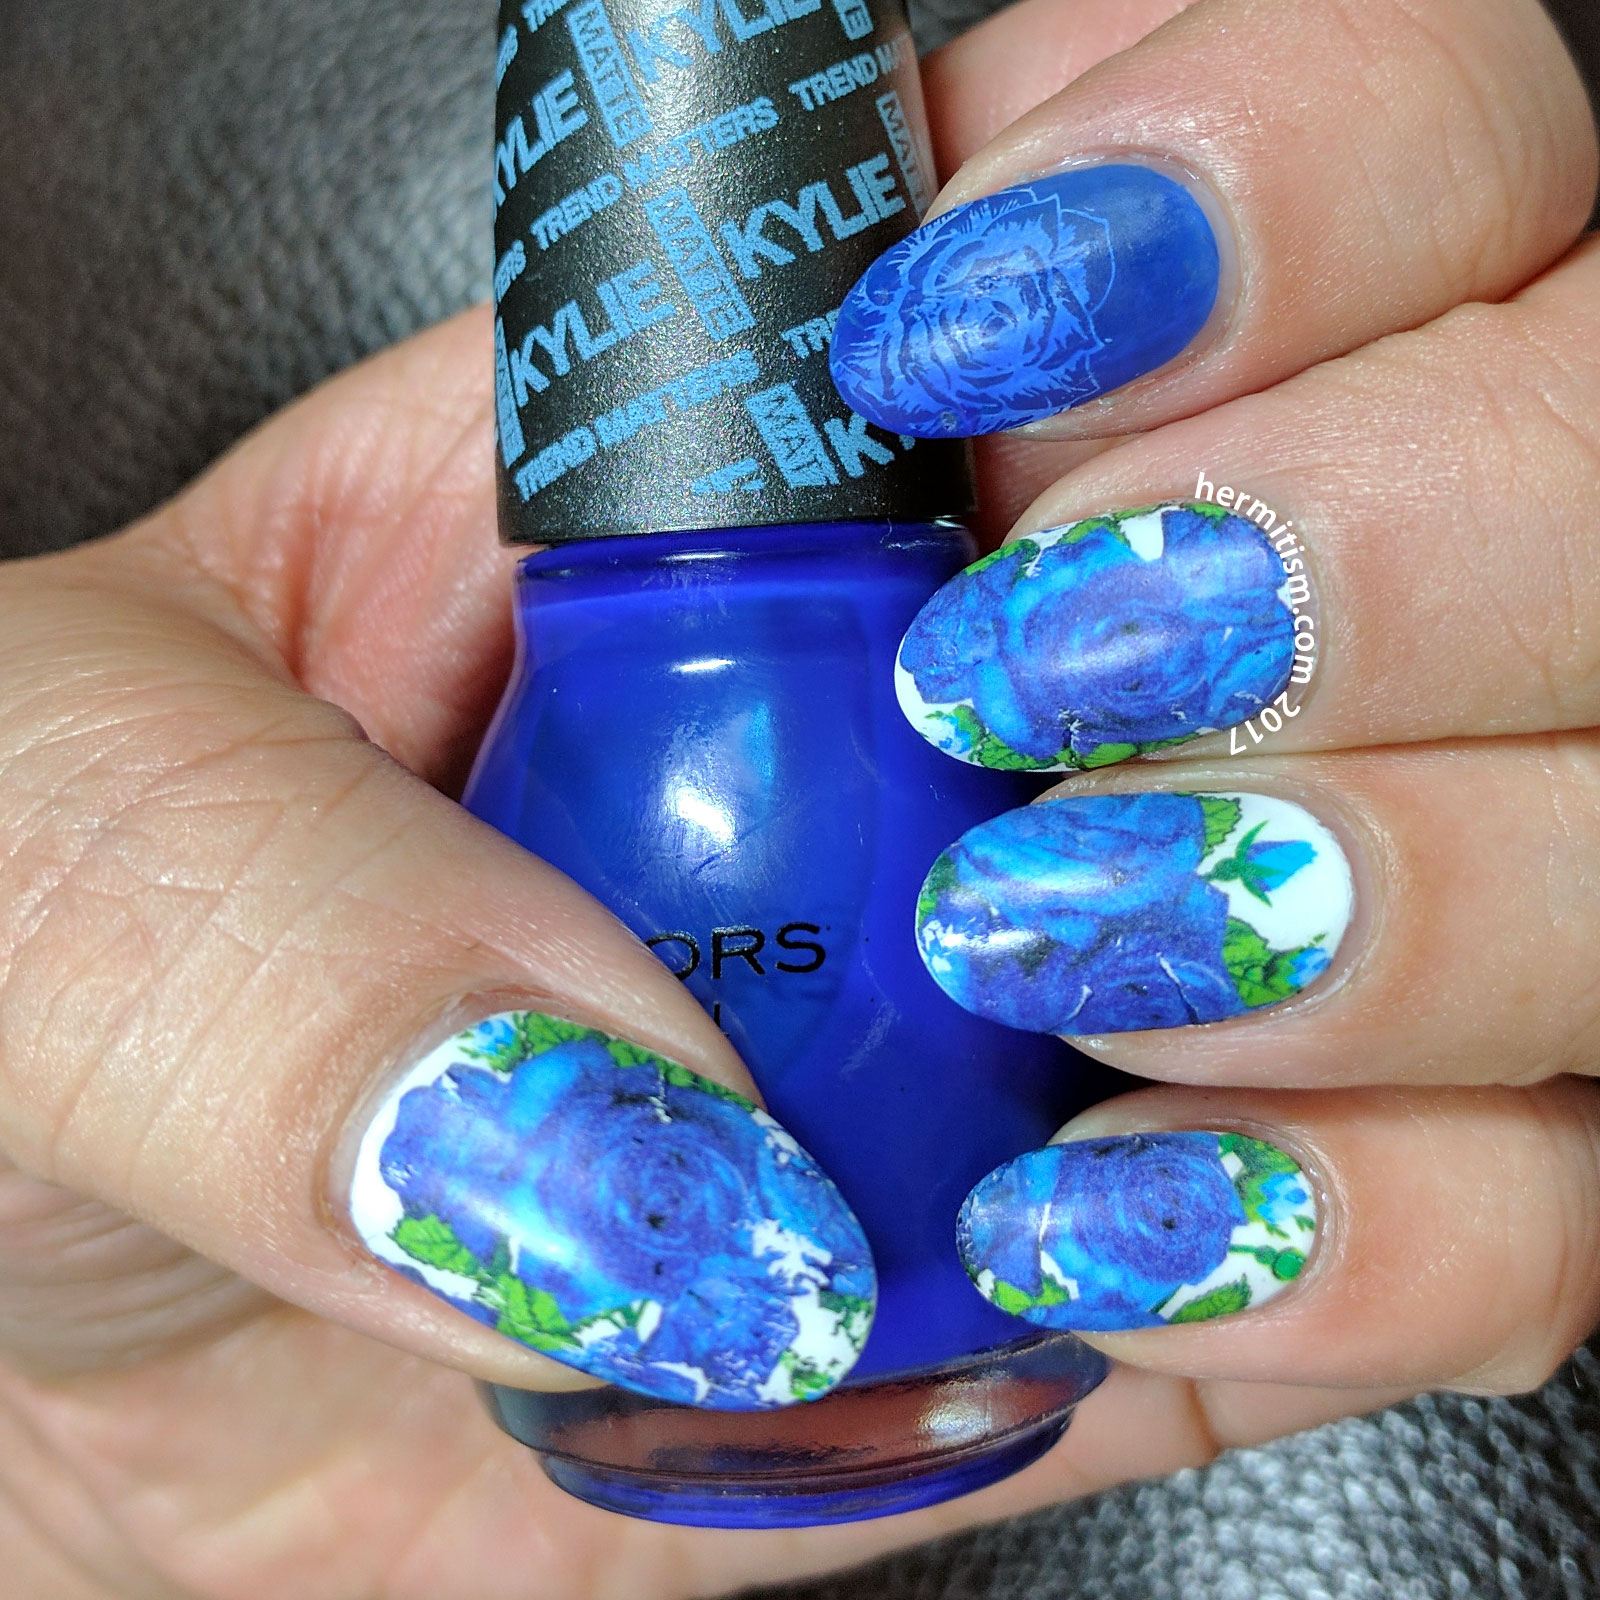 Blue Floral - 26 Great Nail Art Ideas - Hermit Werds